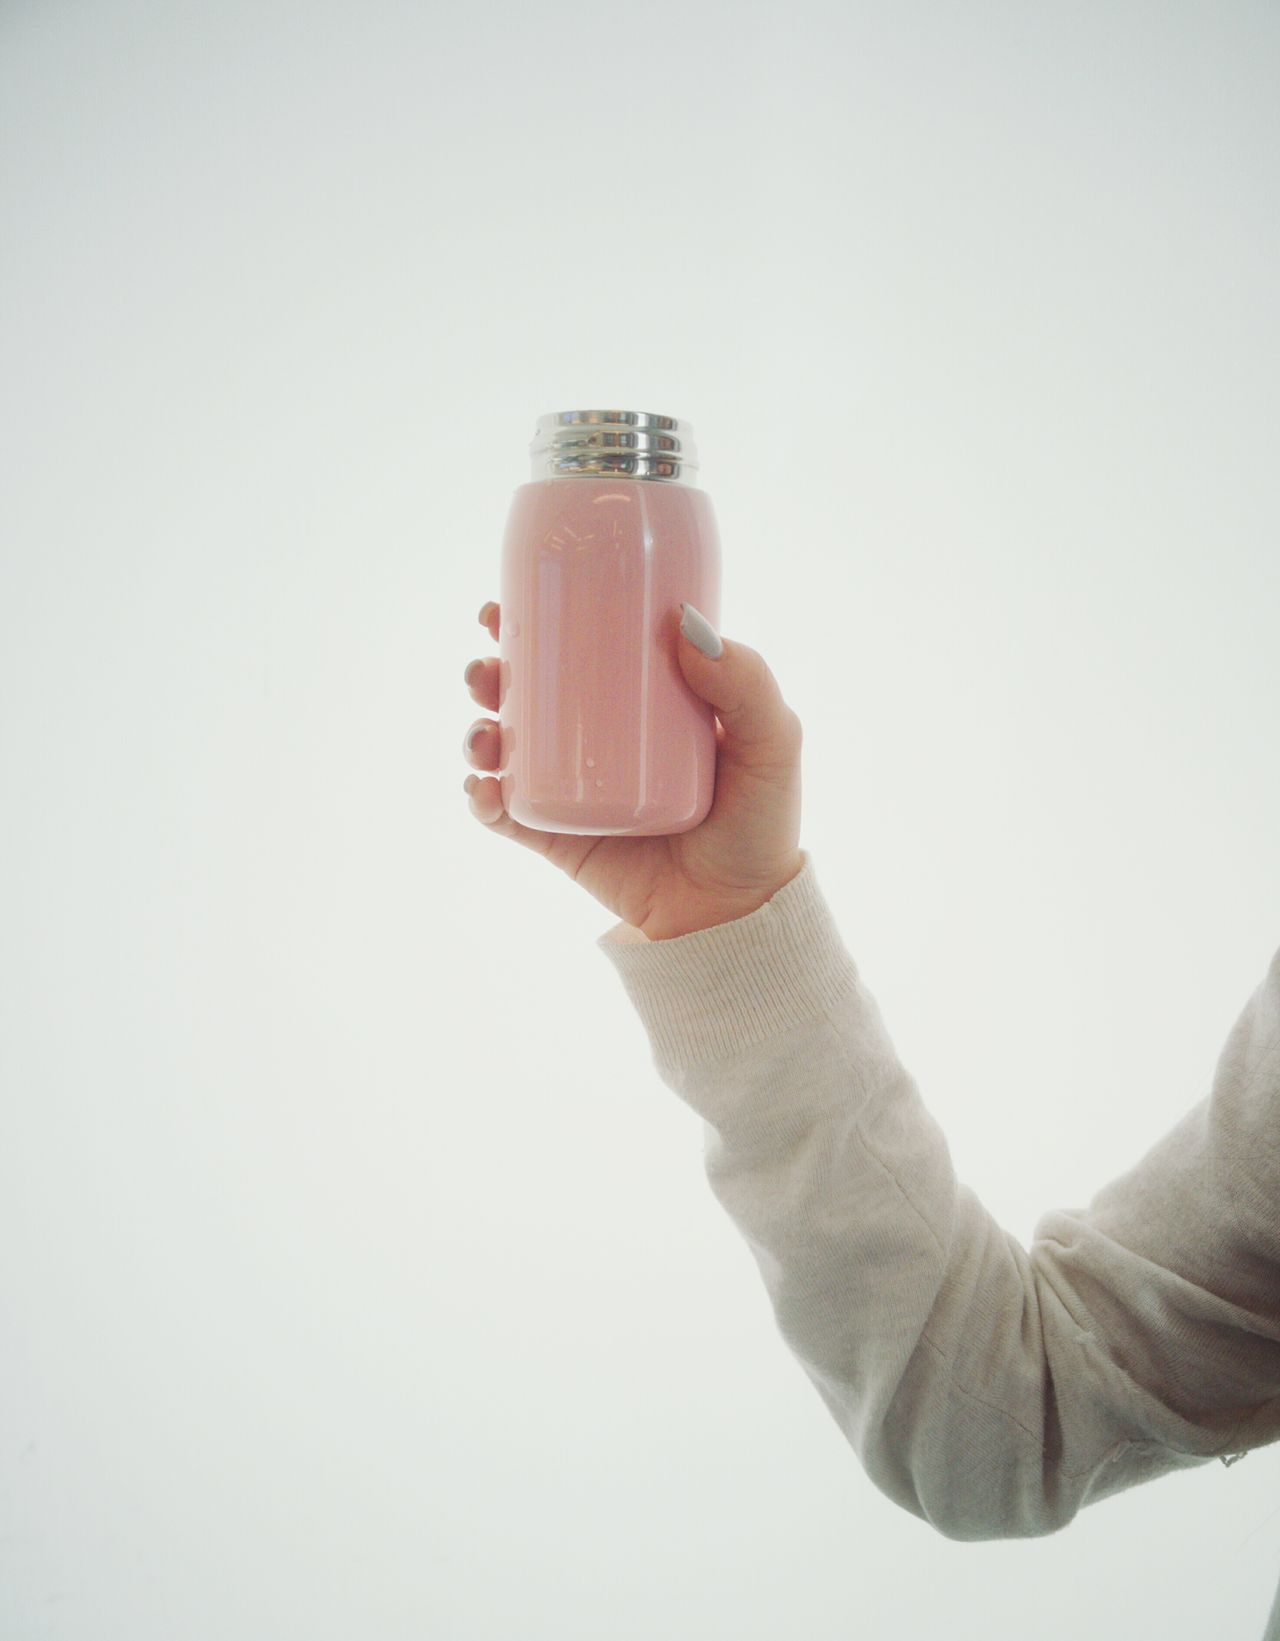 Millennial Pink Drink Studio Shot Holding Human Hand Food And Drink Refreshment Freshness Drinking One Person Human Body Part Healthy Lifestyle Drinking Glass Pink EyeEm AMPt_community EyeEm Team Getty Images Tadaa Community Pink Color